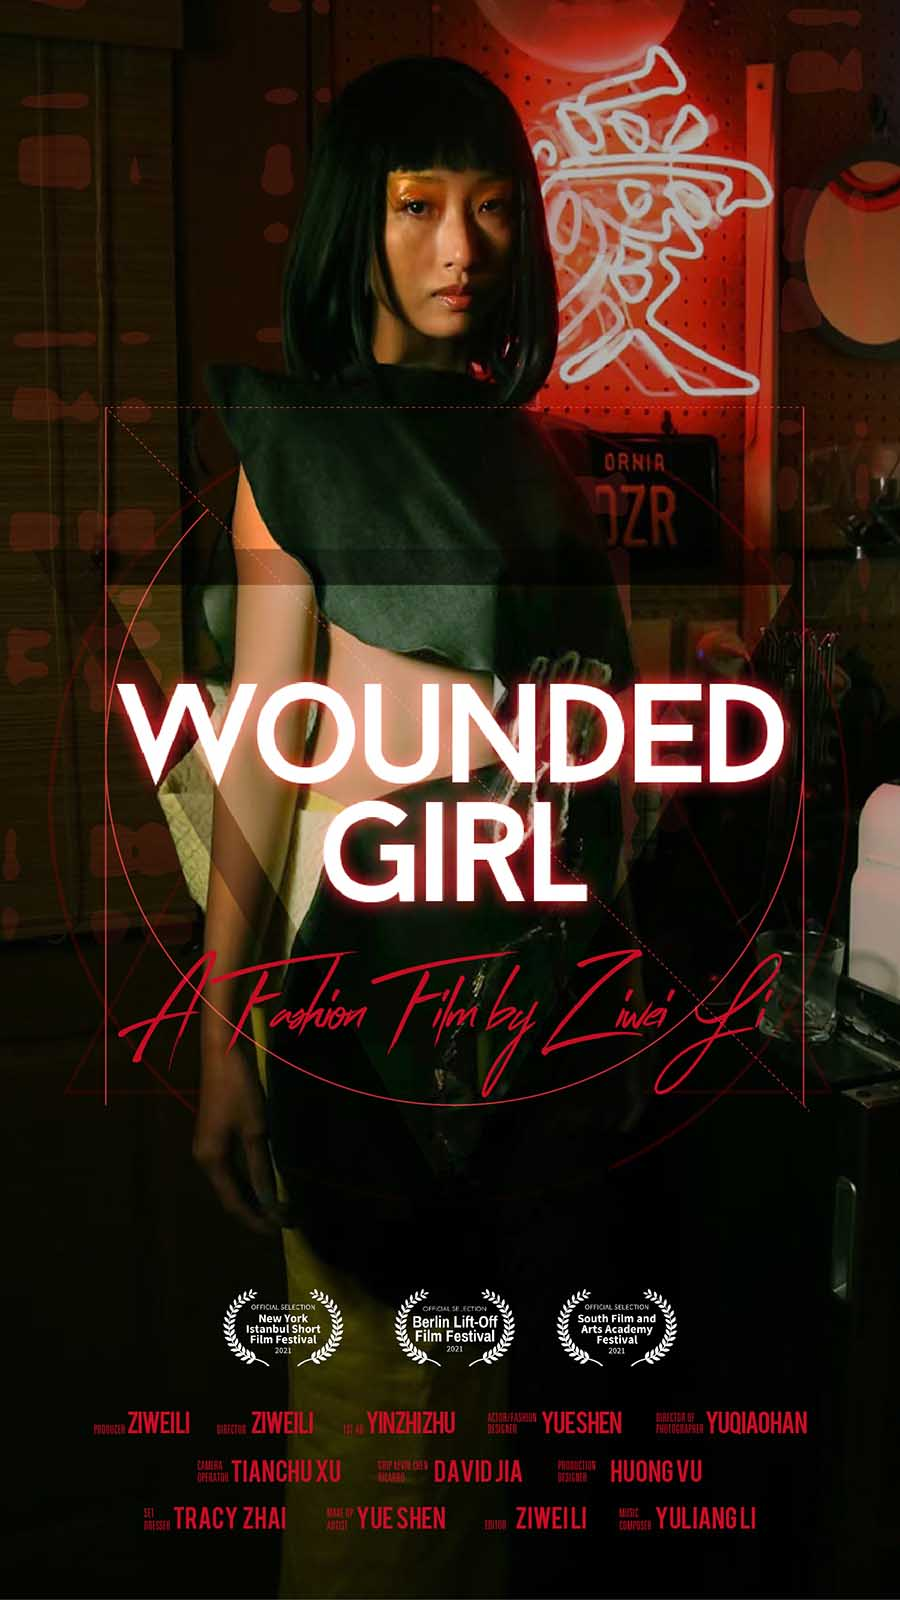 Betty is breaking out with a new fashion short film, 'Wounded Girl'. Discover the behind the scenes story of the new project.